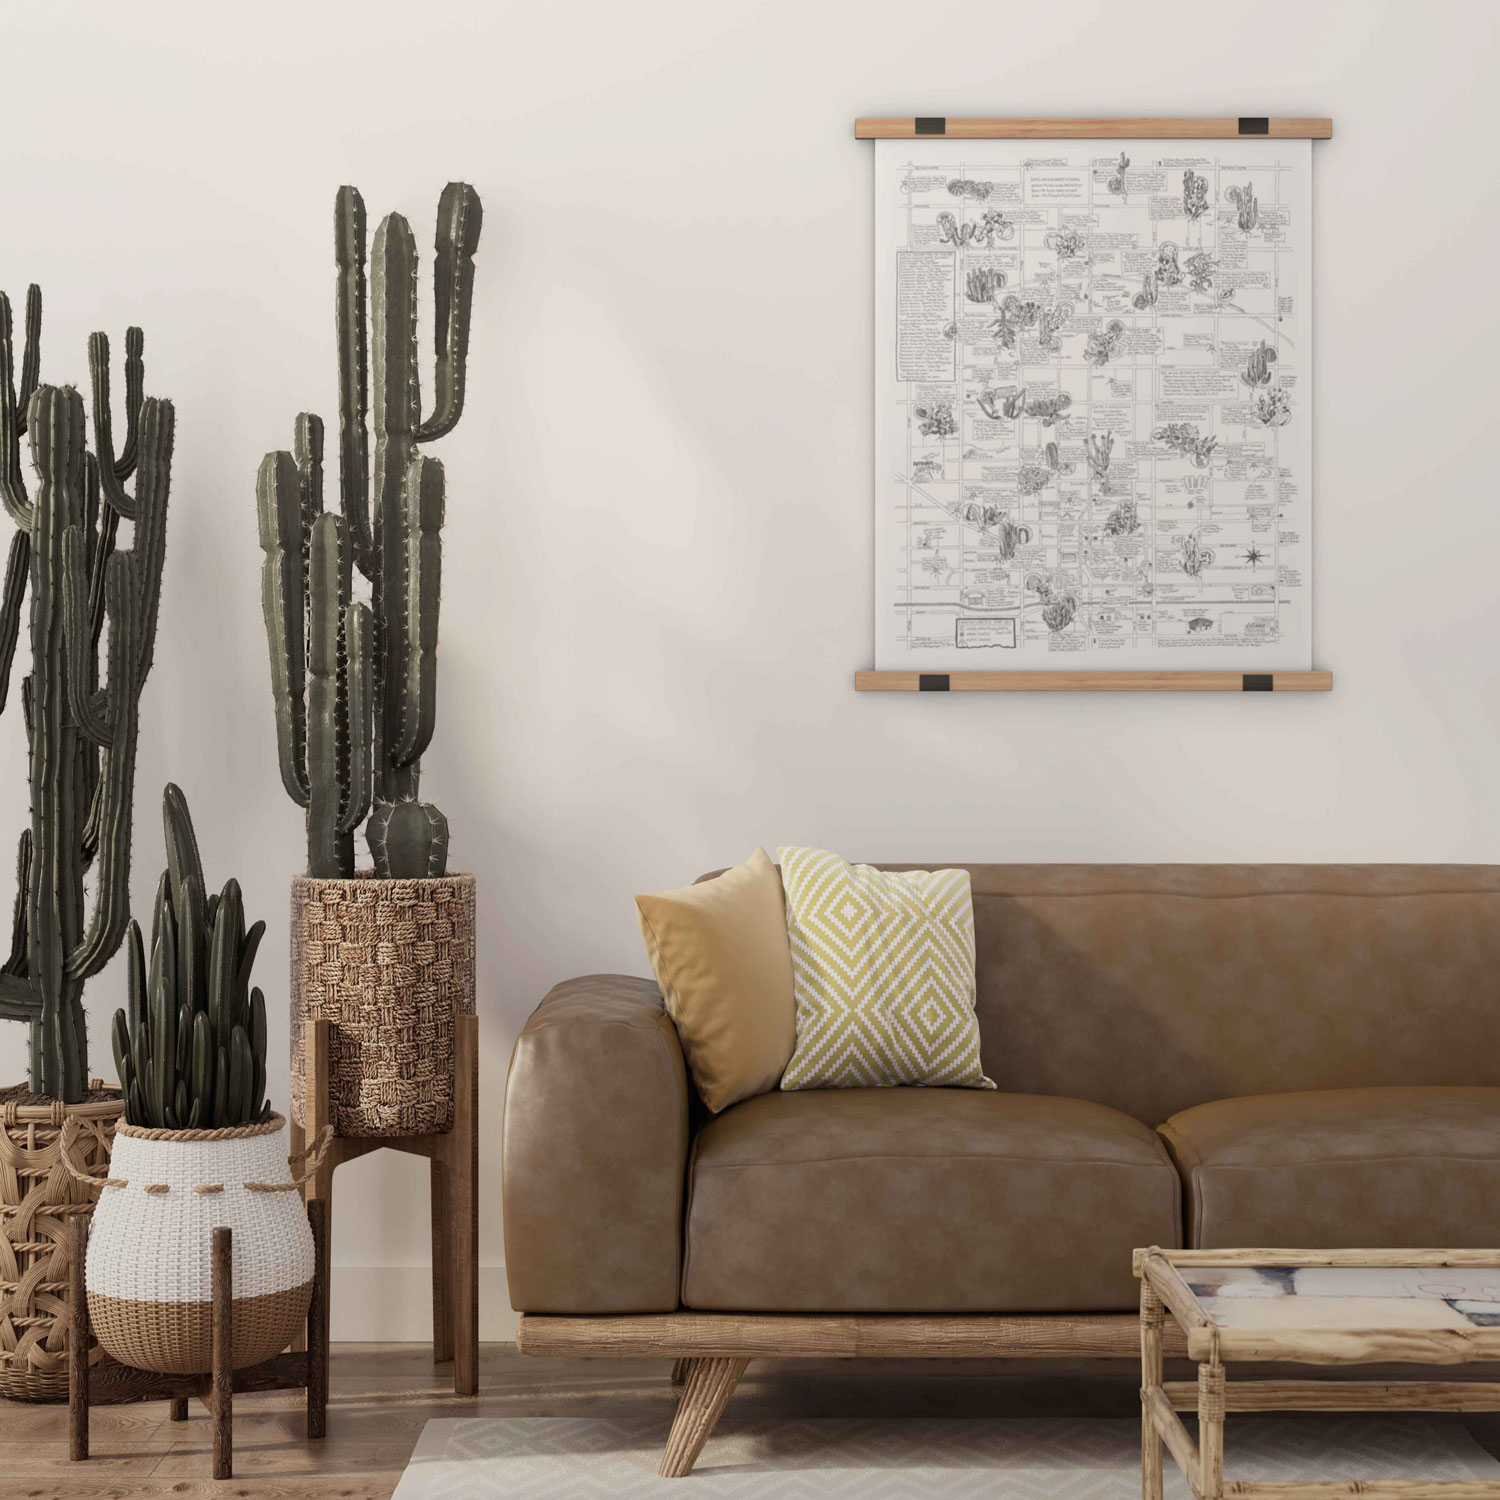 living room with cactus and cactus map on wall